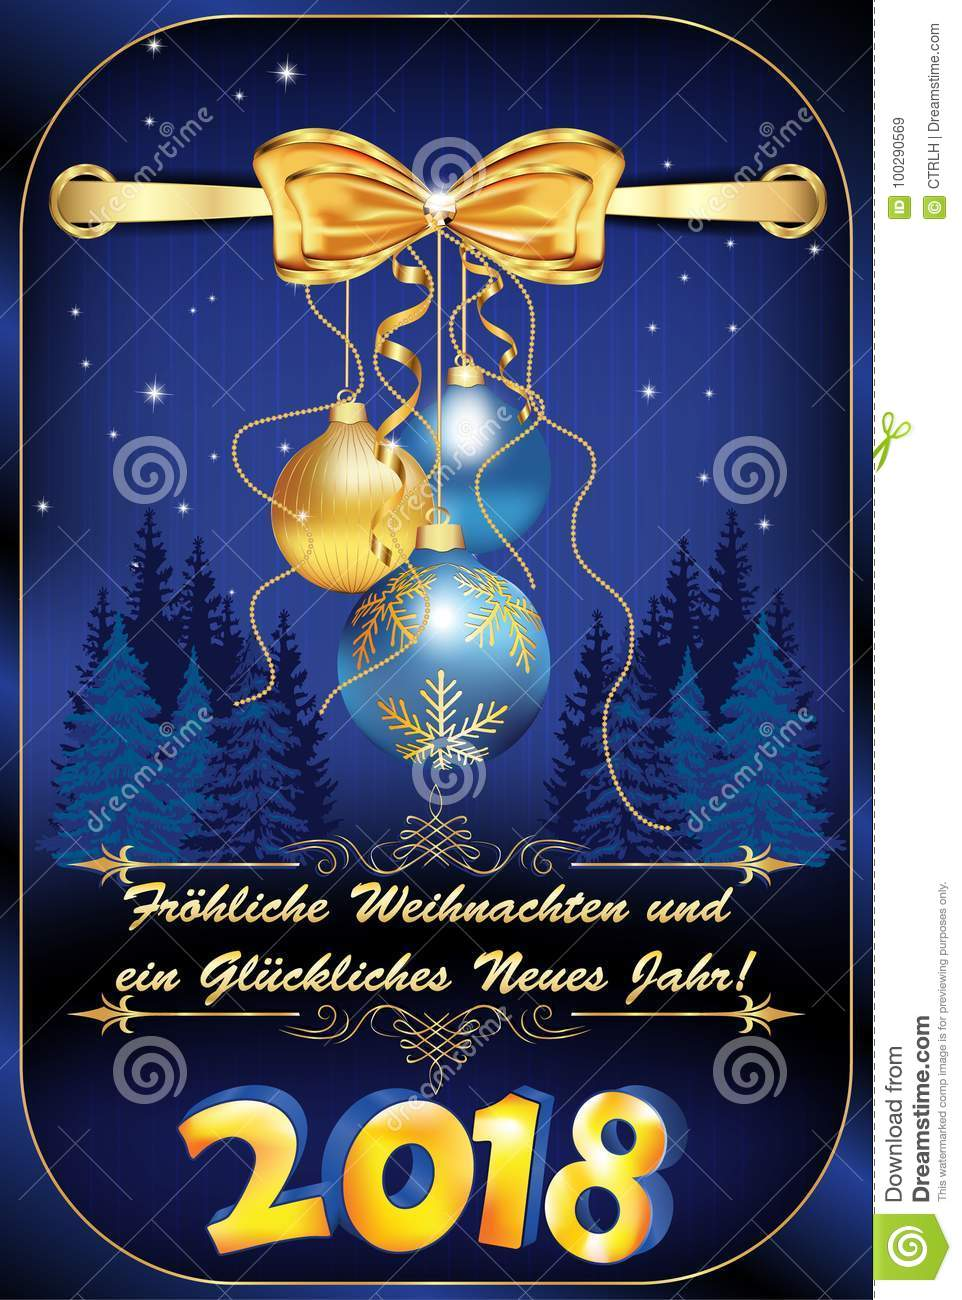 German greeting card merry christmas and happy new year for the download german greeting card merry christmas and happy new year for the new year m4hsunfo